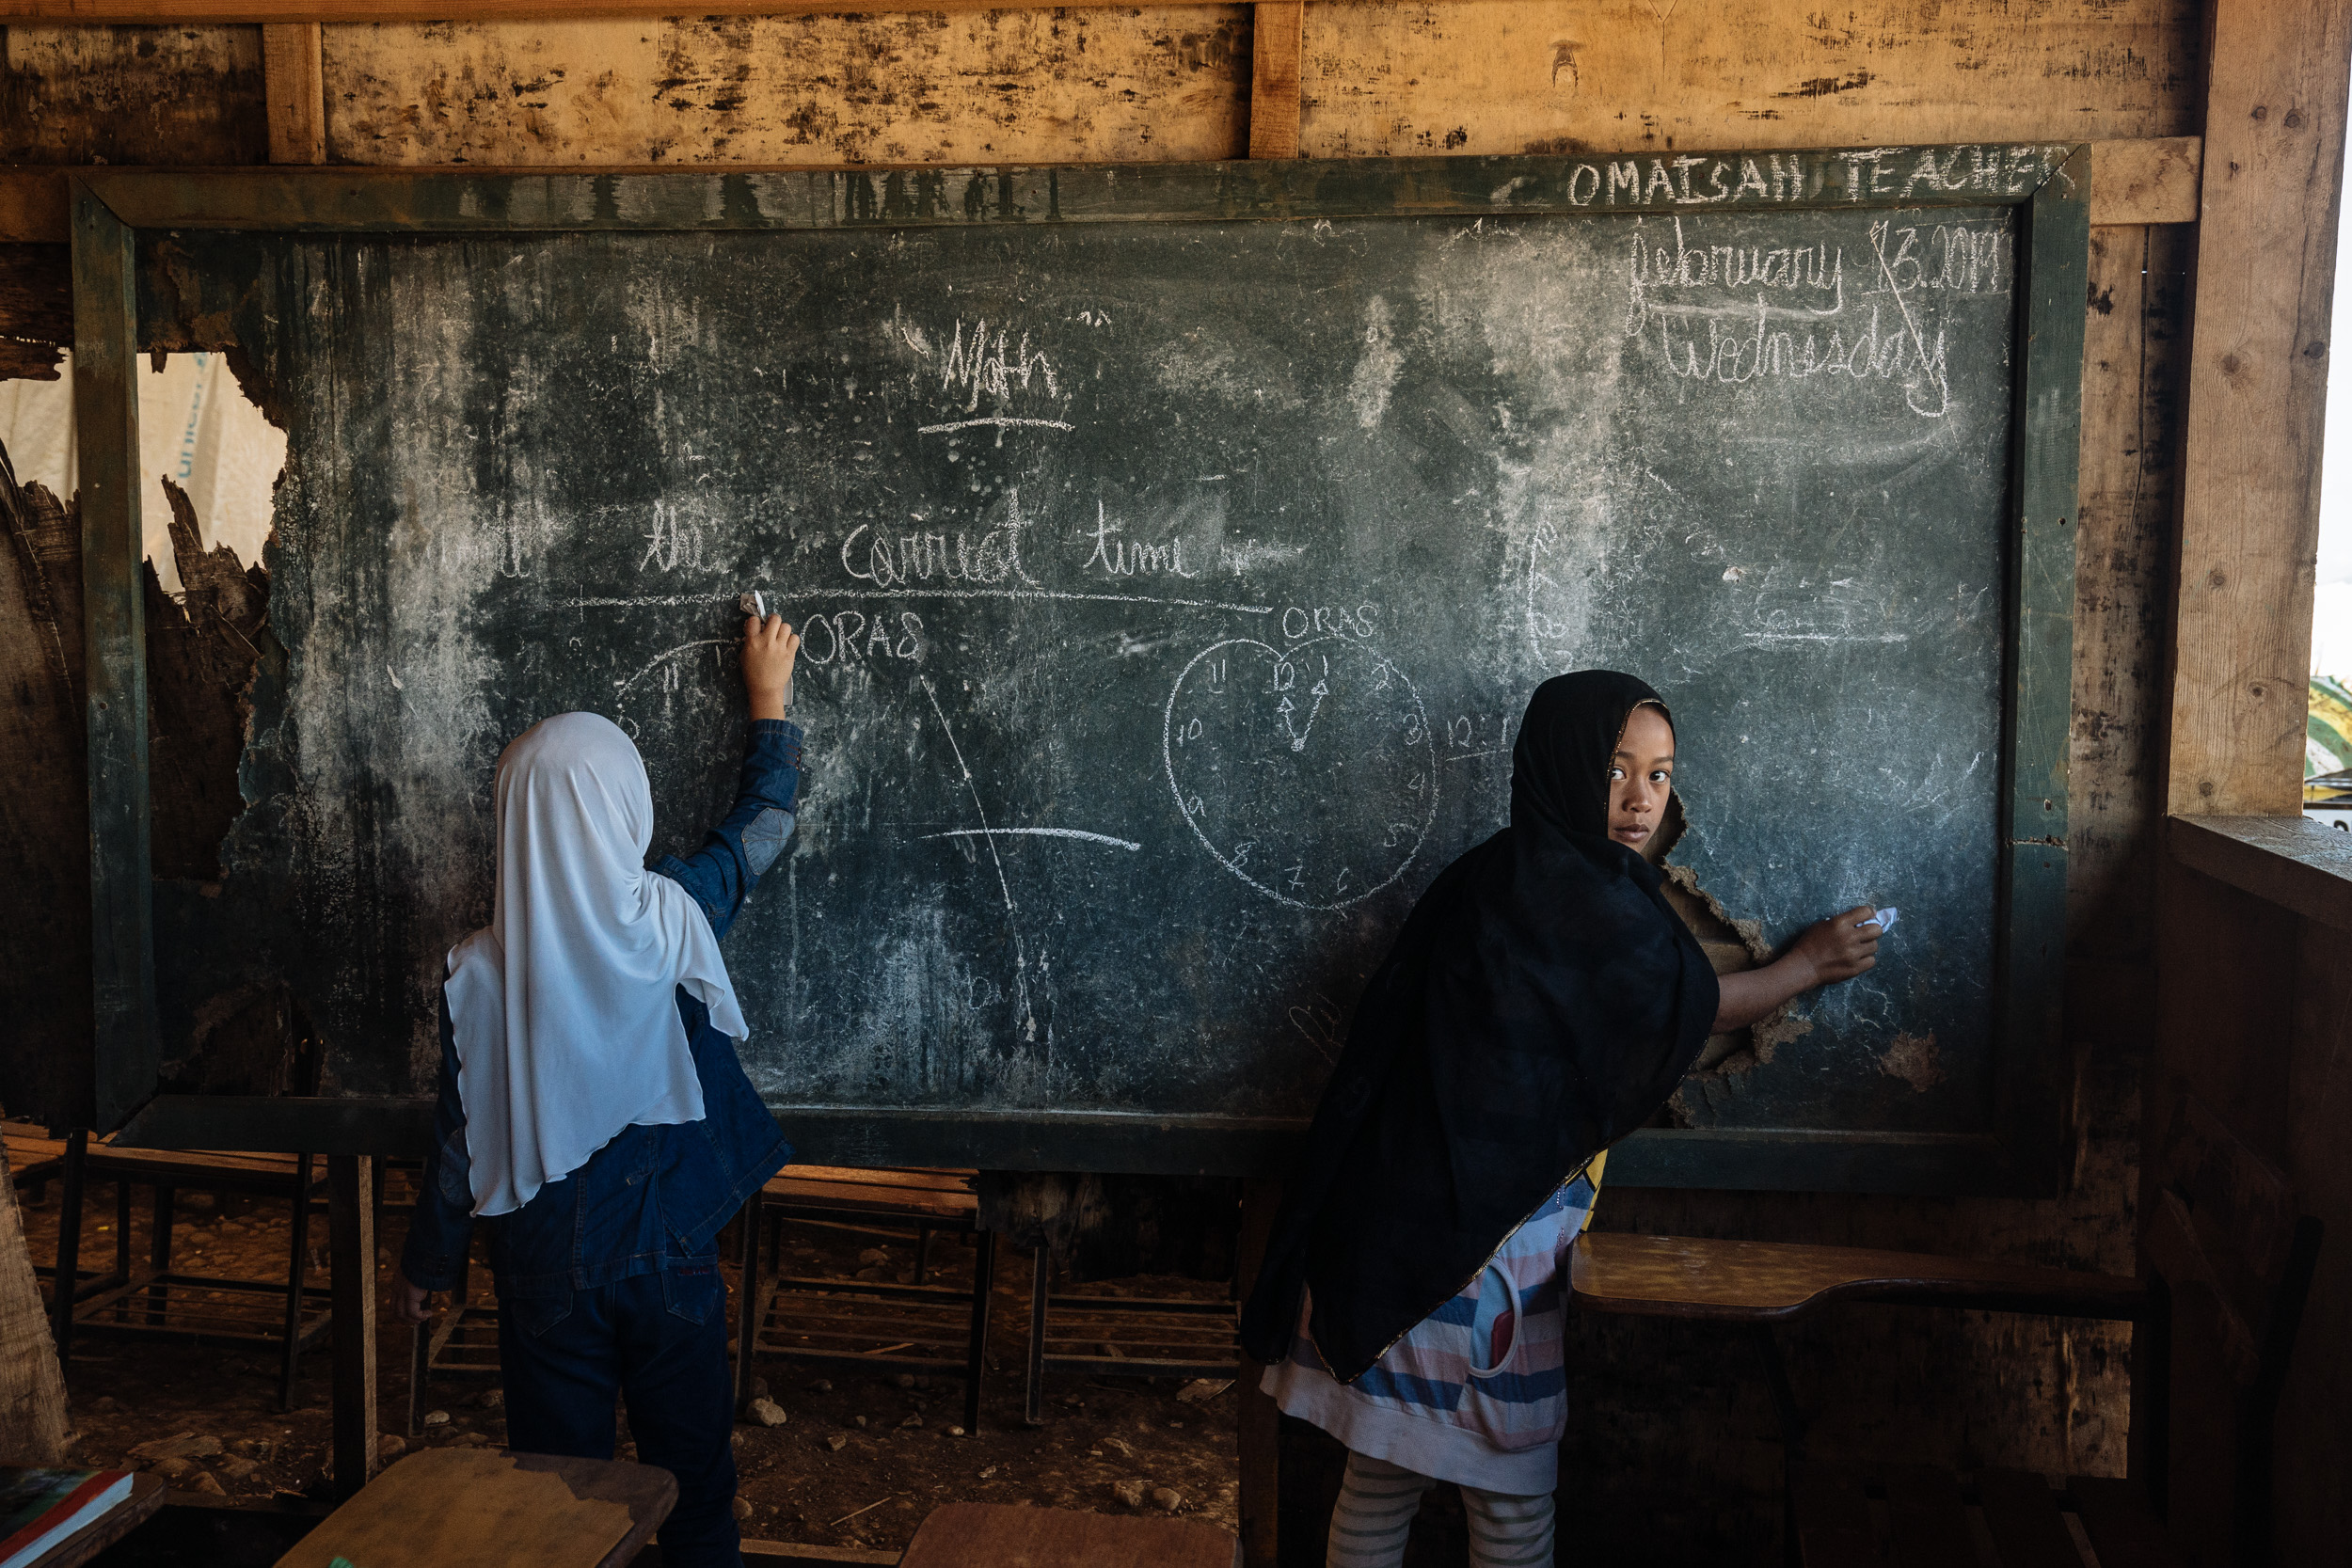 "Young girls are seen erasing the blackboard of their makeshift classroom in a camp for internally displaced youth in Marawi City. It has been more than a year since the Philippine military declared the Muslim-majority city of Marawi ""liberated"" from ISIS-linked militants, but the city remains a ghost town, and locals are becoming more and more frustrated with the lack of government support. Marawi's youth, among the most vulnerable, are now faced with forming their identity amidst trauma and conflict."